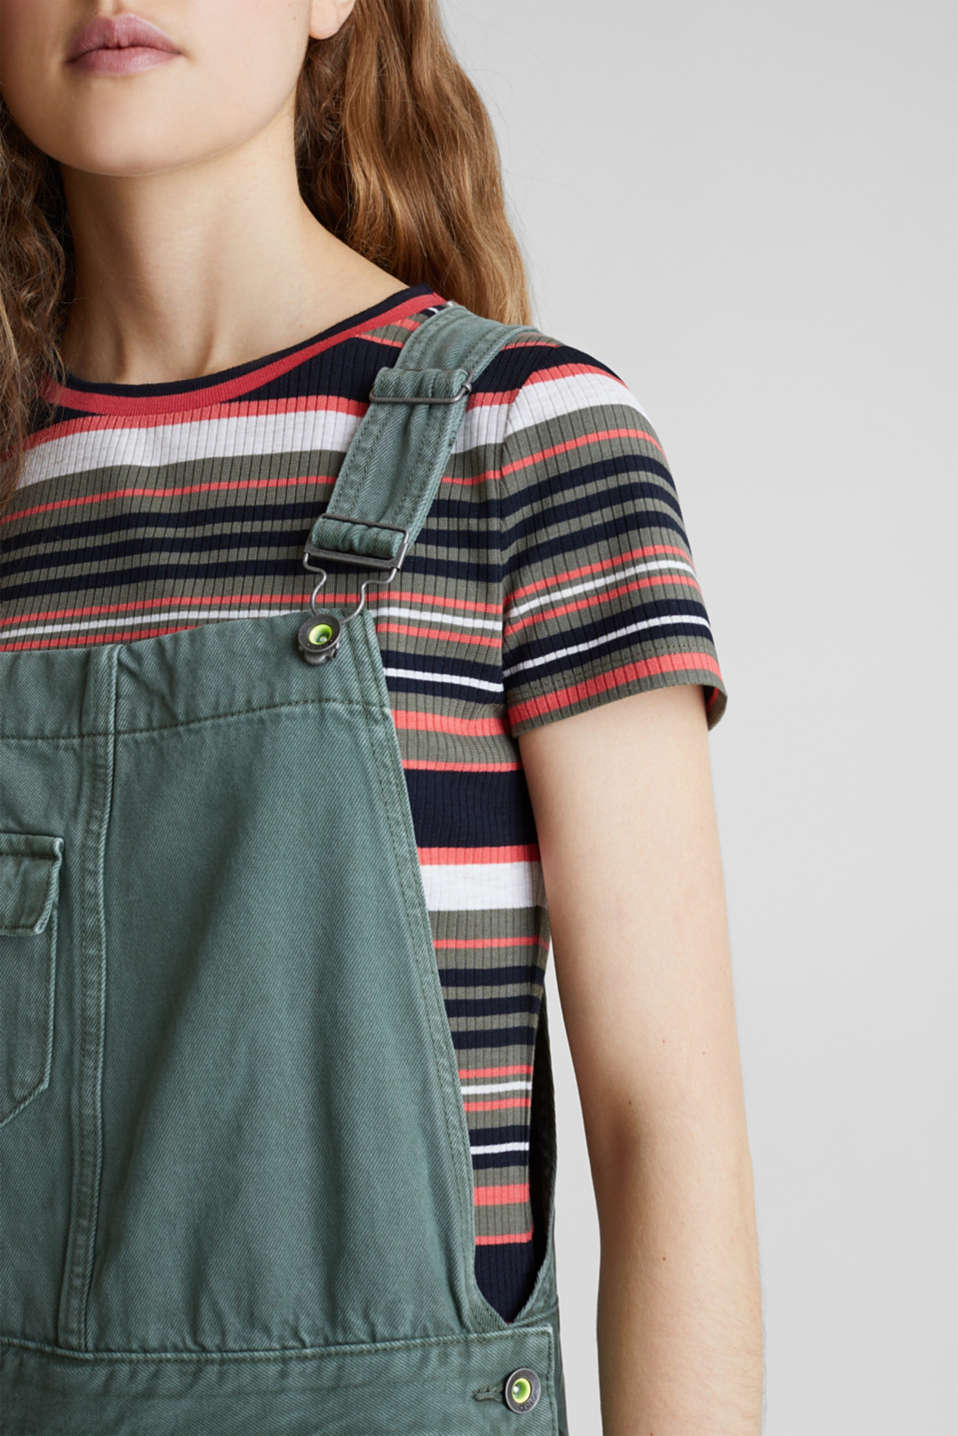 Dungaree skirt with breast pocket, KHAKI GREEN, detail image number 2